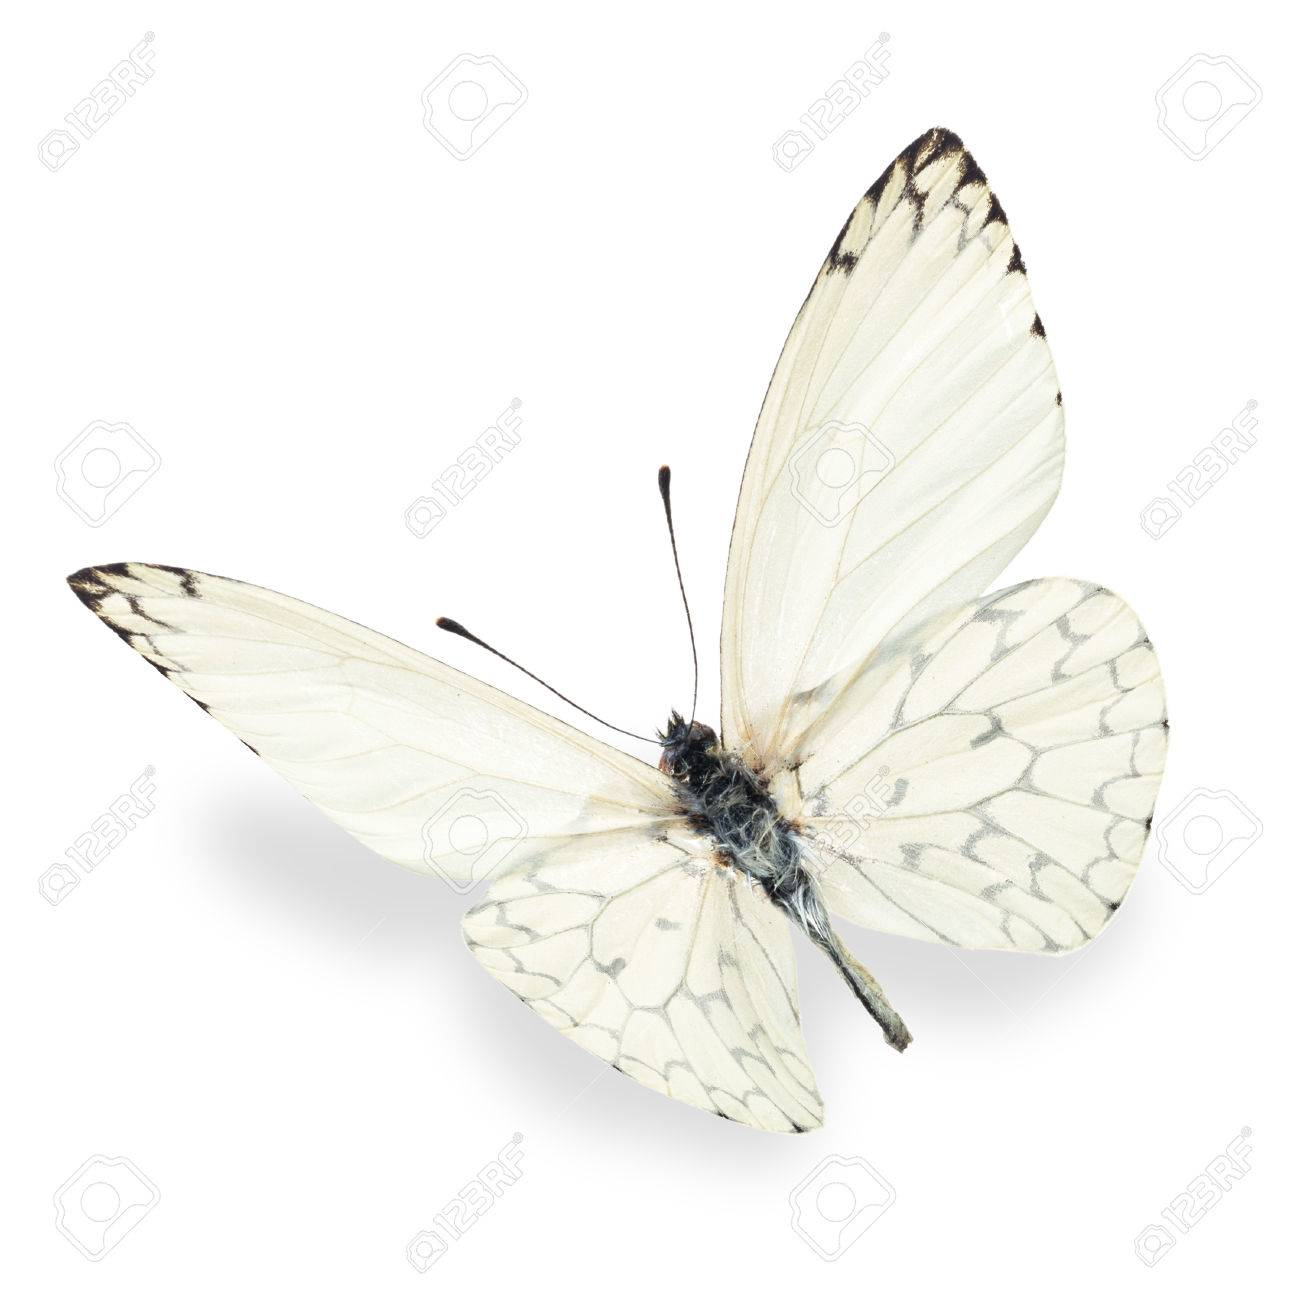 Beautiful white butterfly, isolated on white background - 40371992